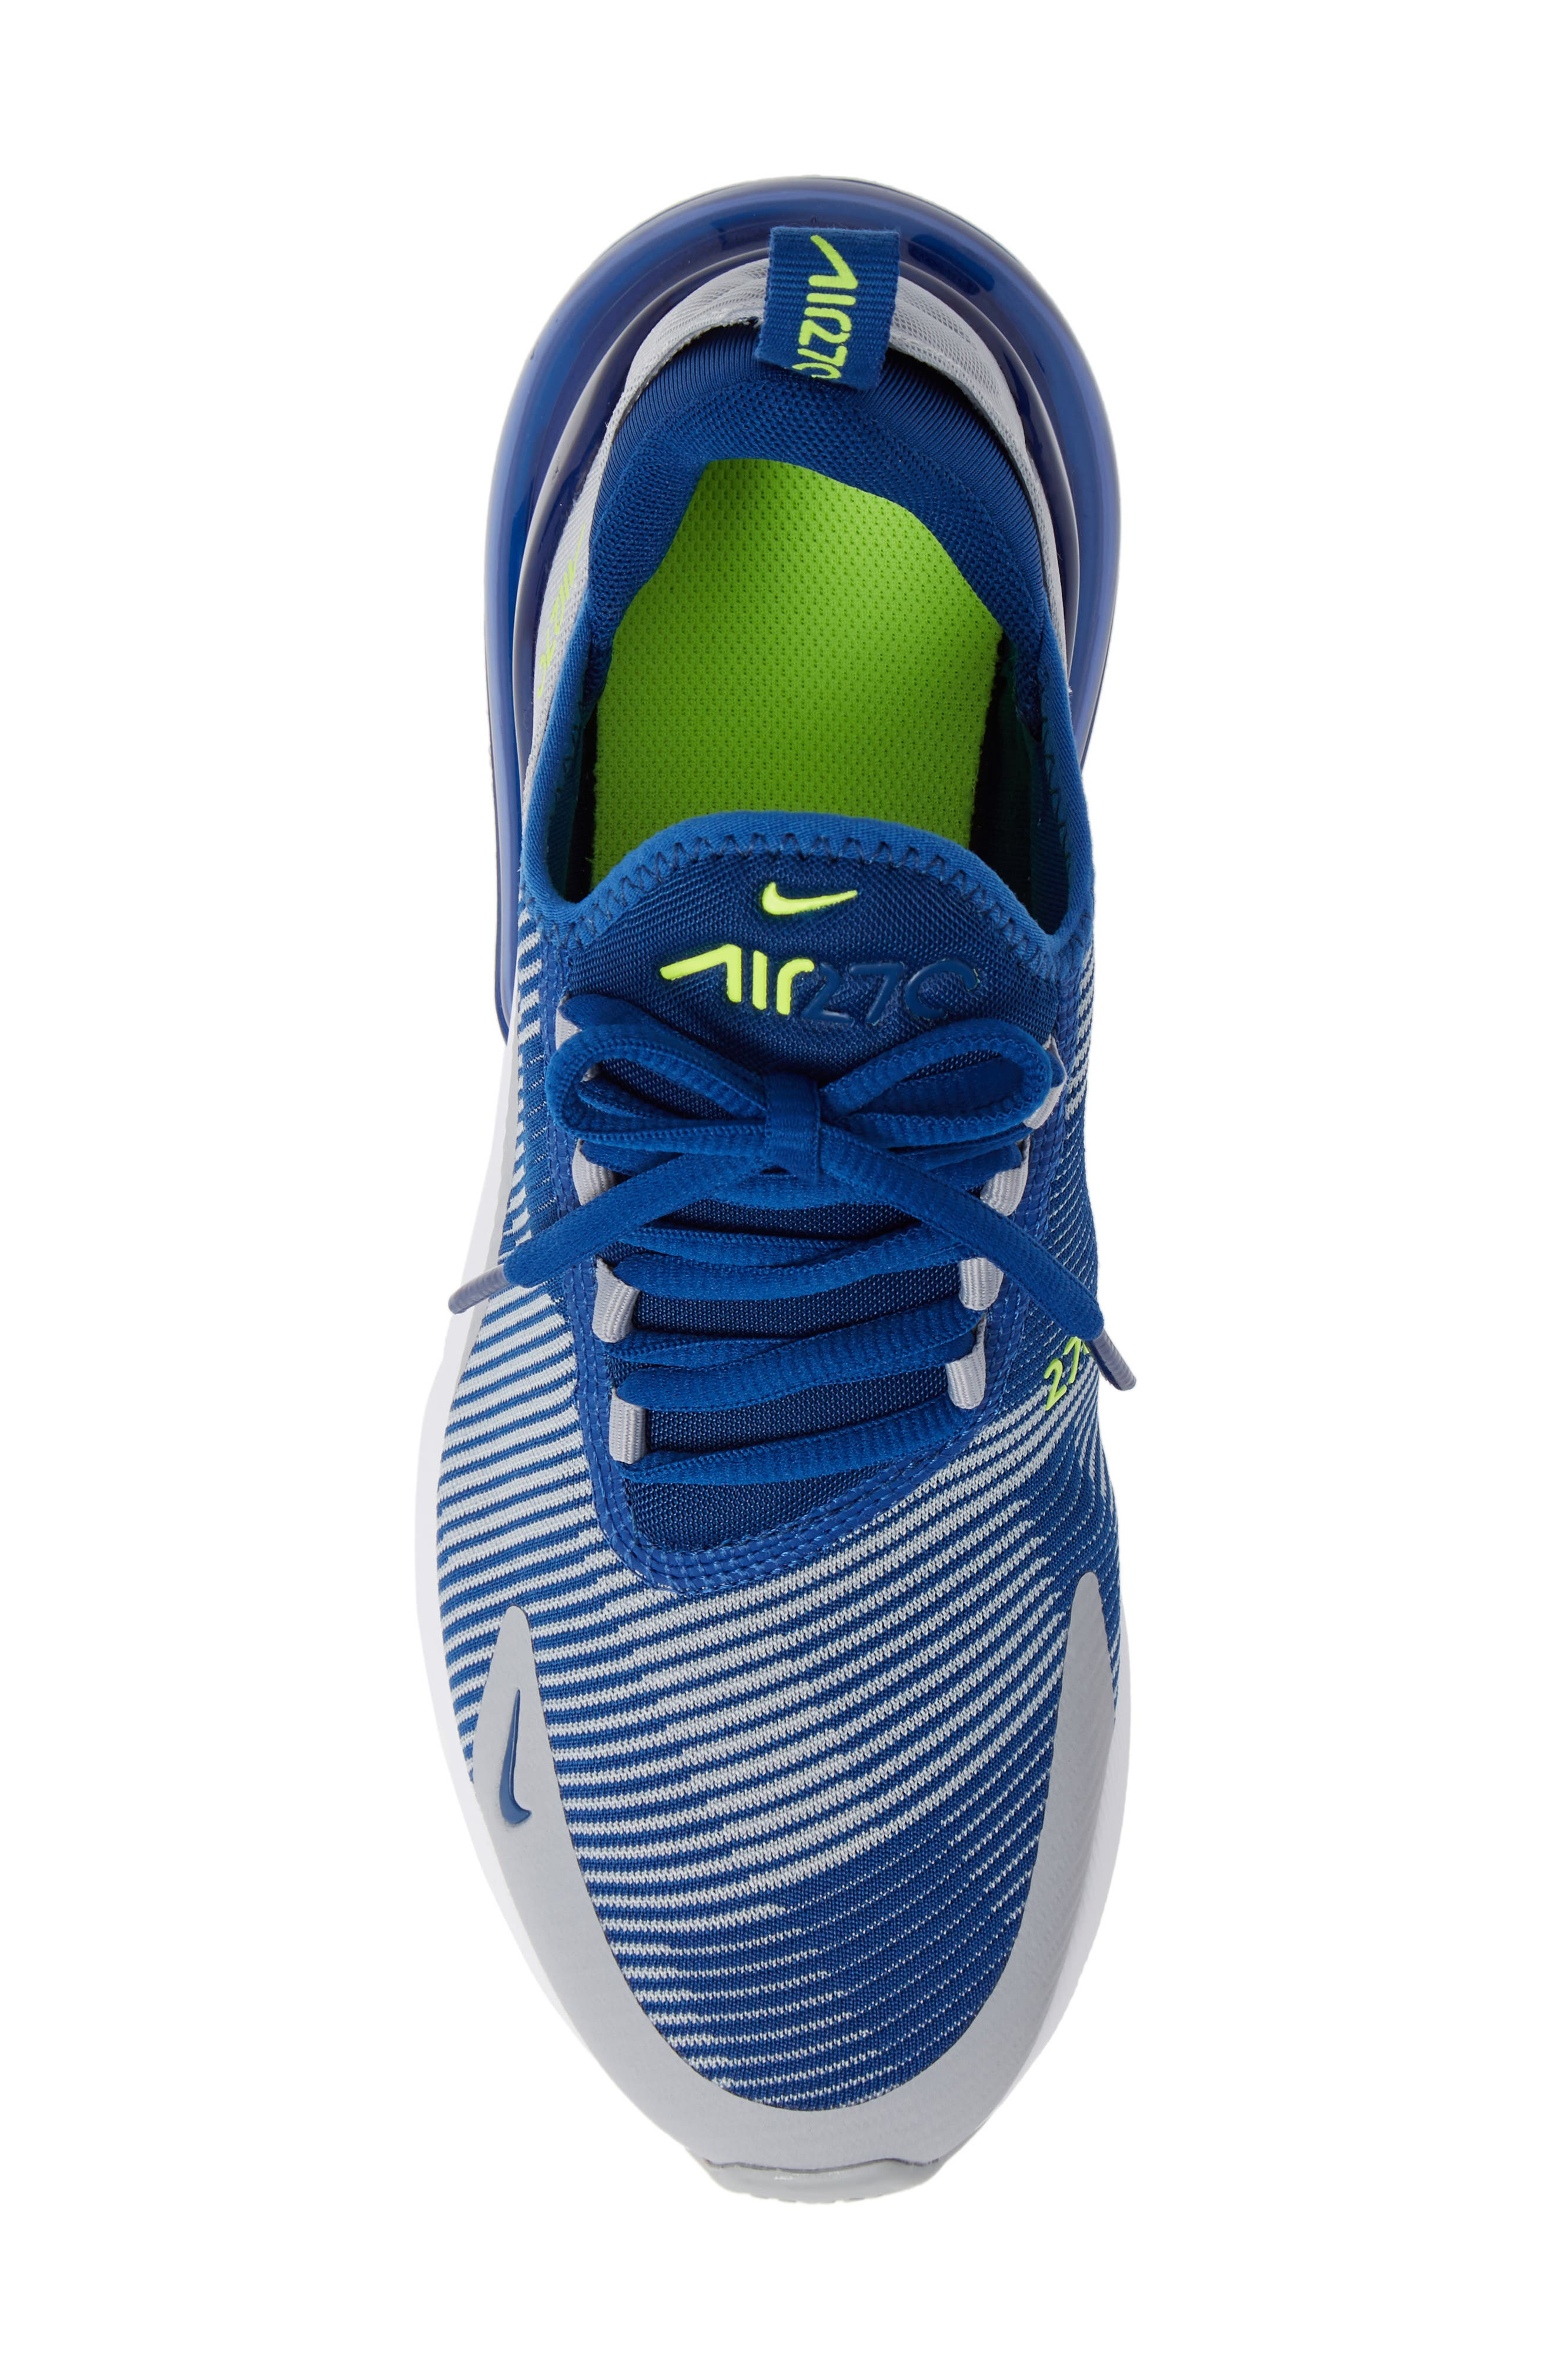 Air Max 270 Sneaker,                             Alternate thumbnail 5, color,                             BLUE/ GREY/ VOLT/ WHITE